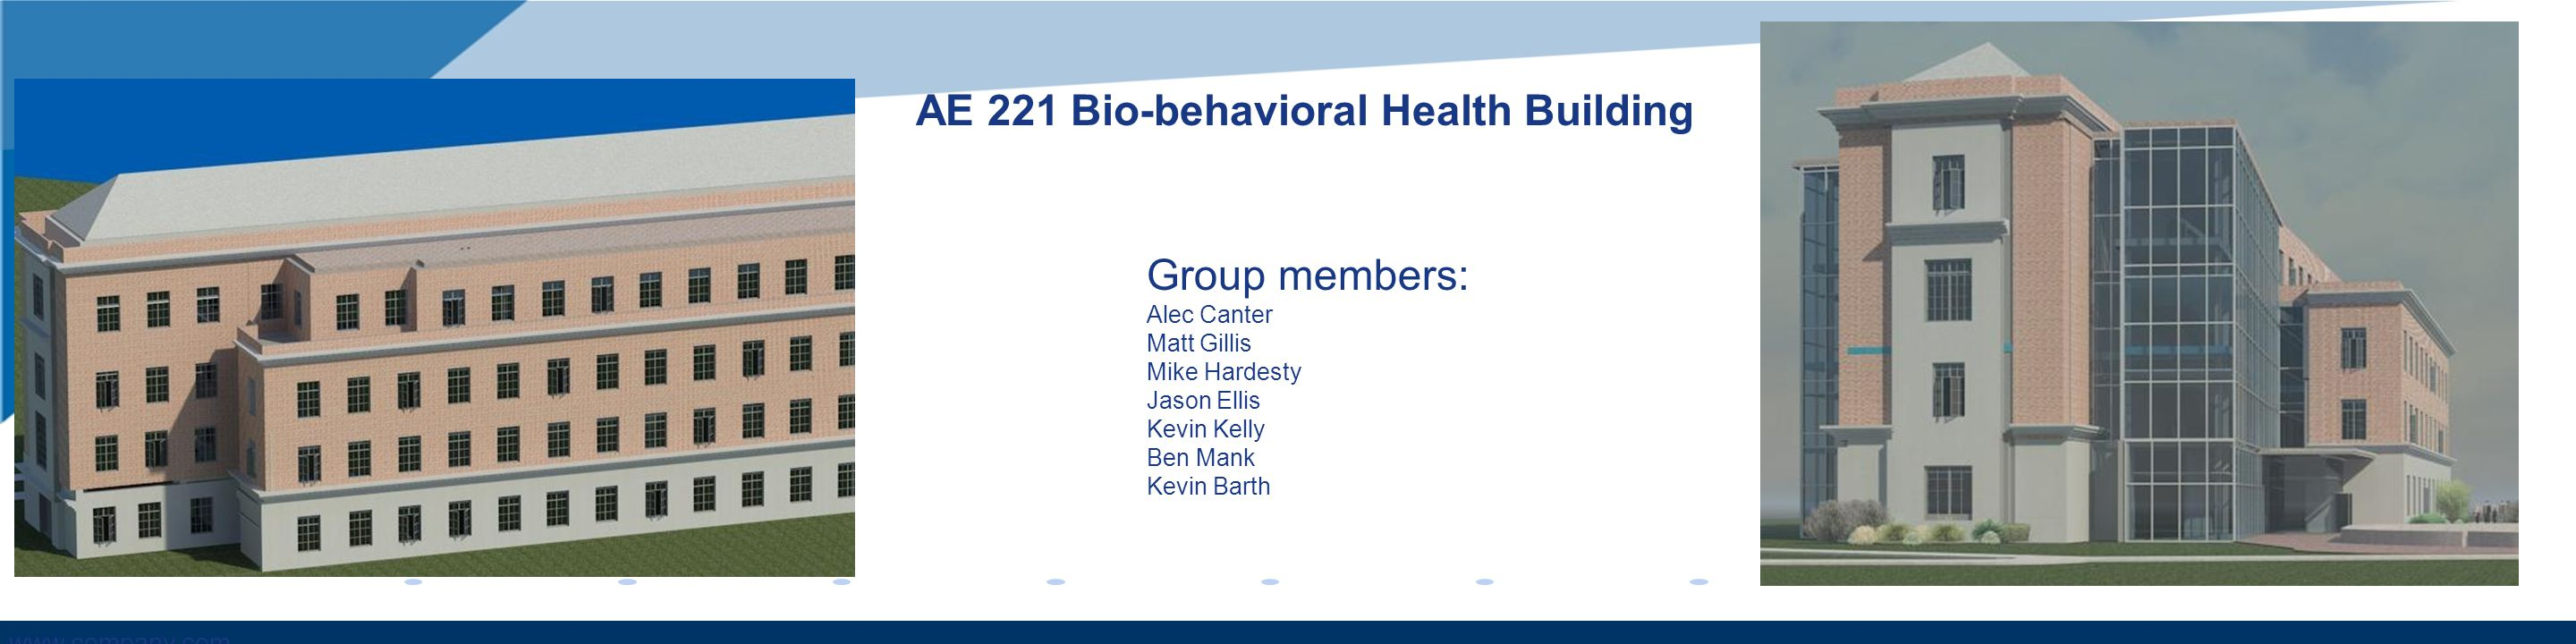 www.company.com AE 221 Bio-behavioral Health Building Group members: Alec Canter Matt Gillis Mike Hardesty Jason Ellis Kevin Kelly Ben Mank Kevin Bart